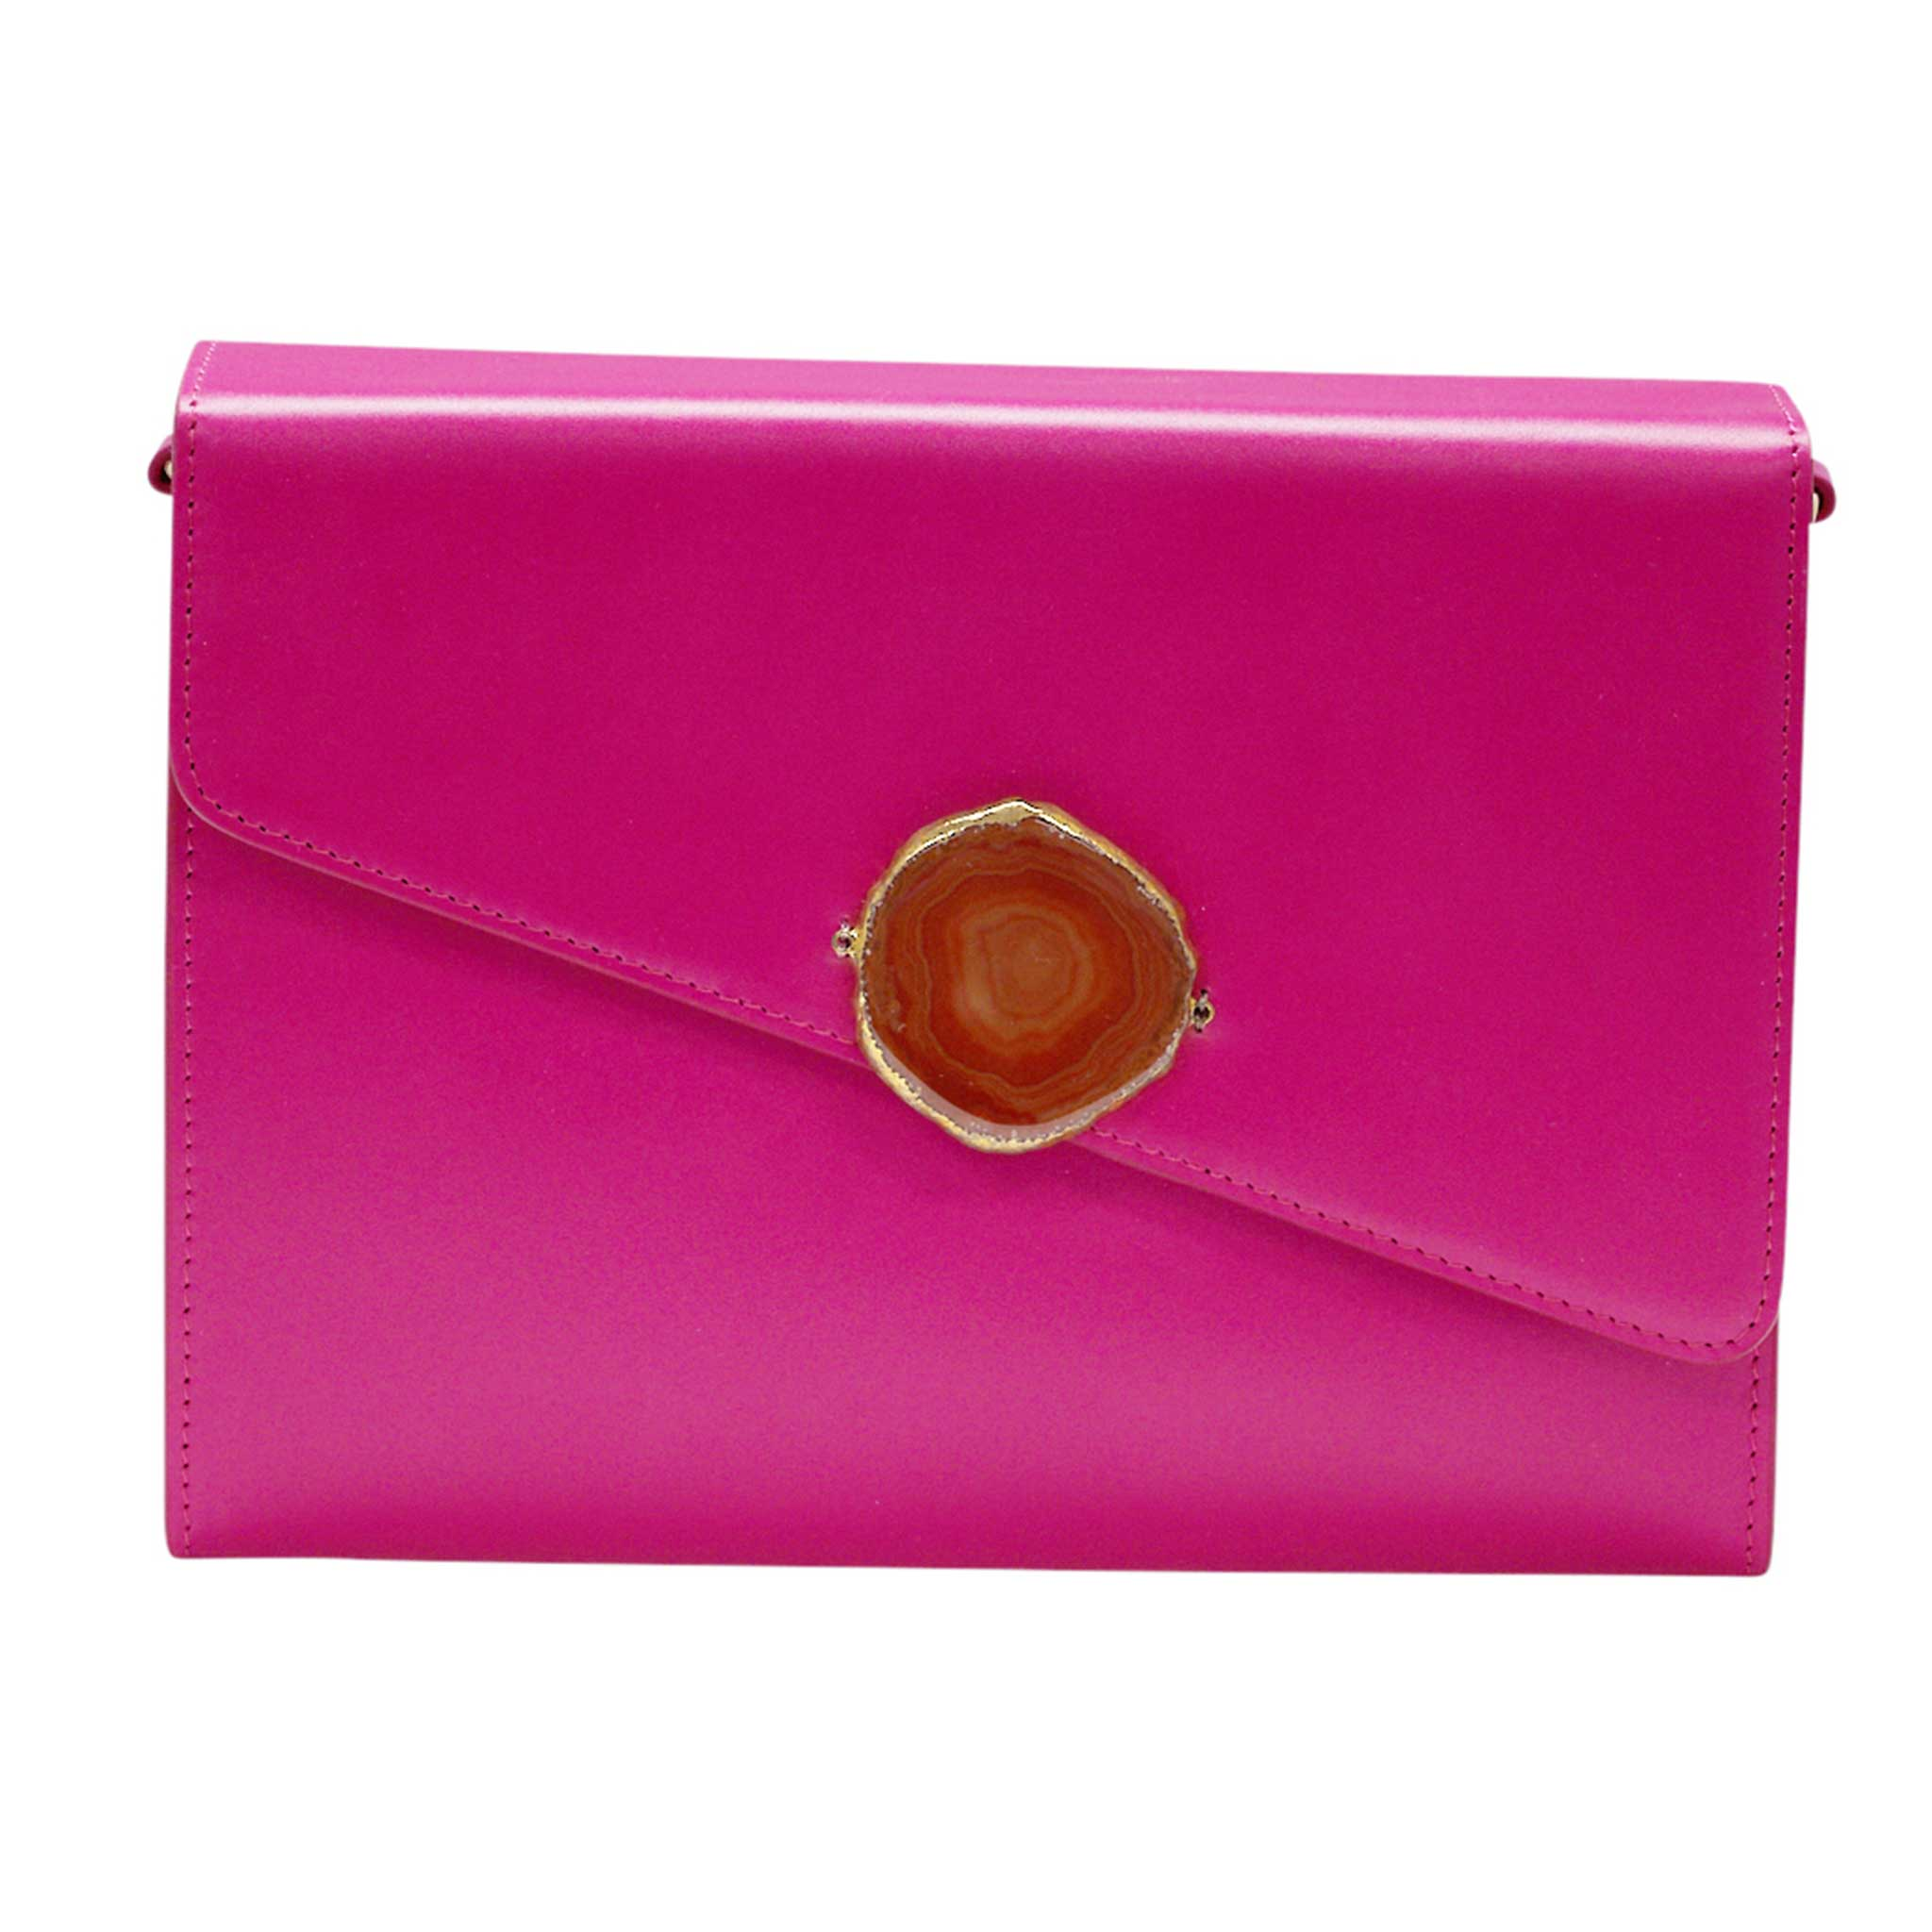 LOVED BAG - PINK RUBY LEATHER WITH BROWN AGATE - 1.01.001.029